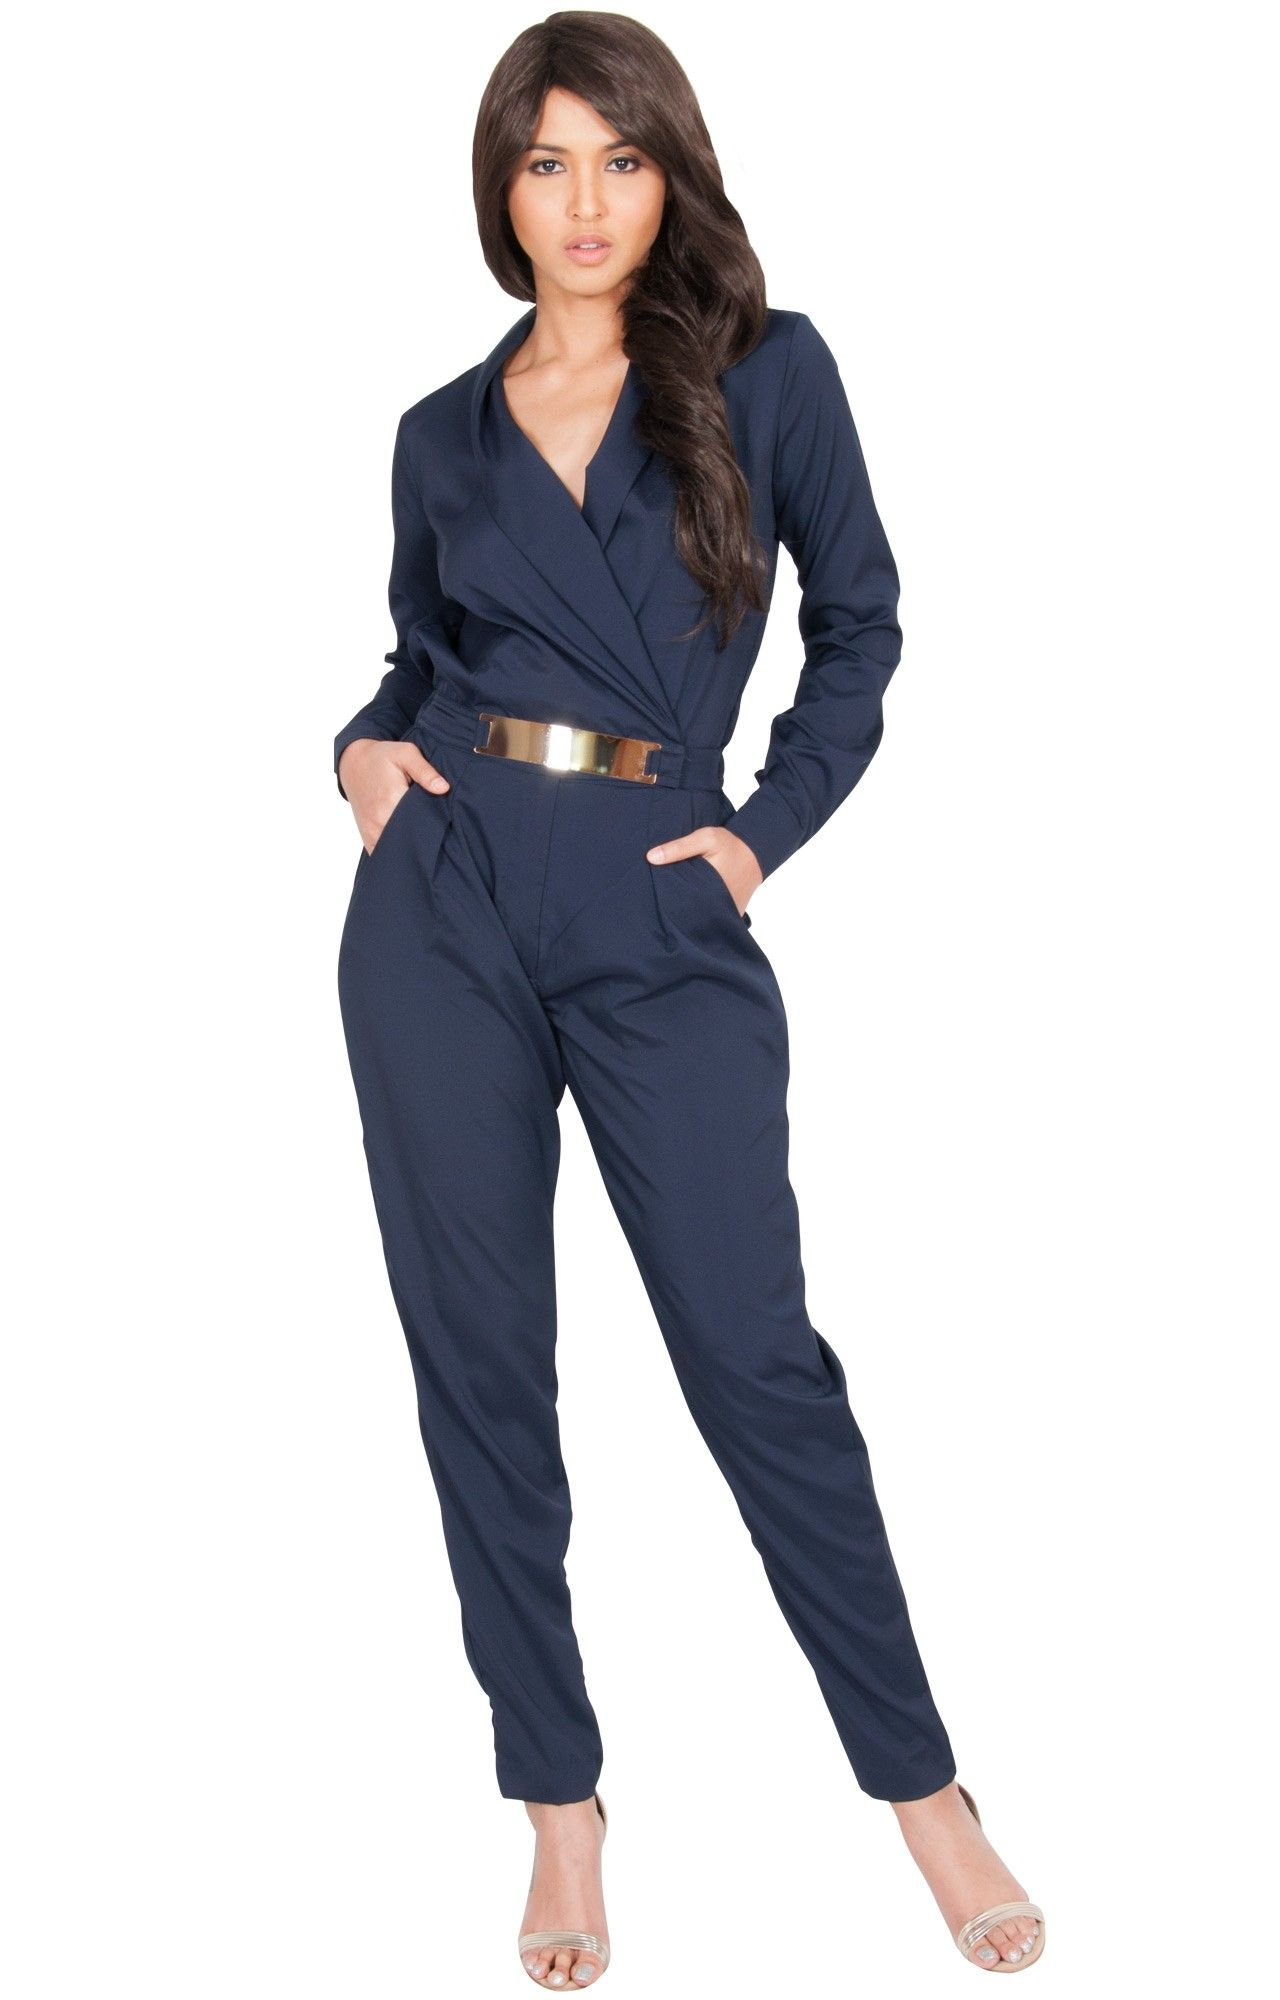 66c35c474660 ROSLIN - Long Sleeve Metallic Belt Chic Jumpsuit